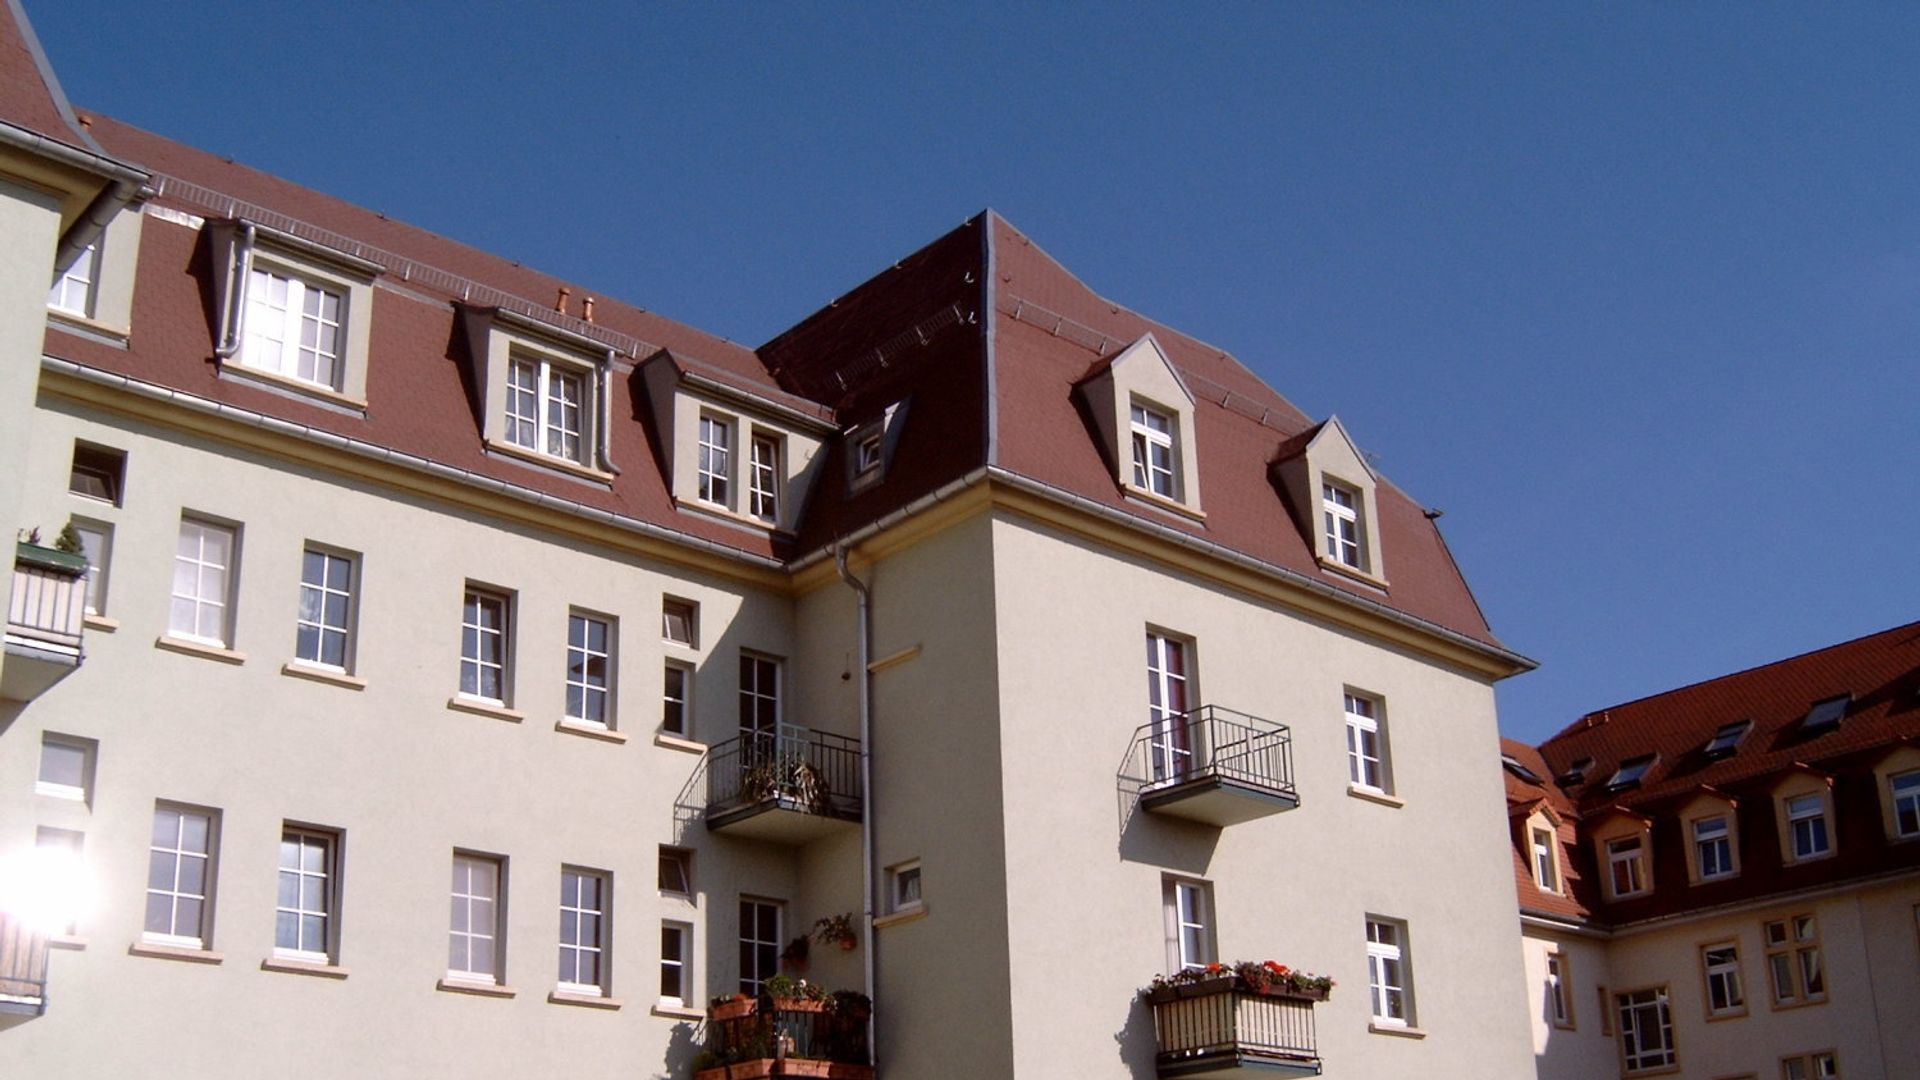 3 Bed Apartment At Hubertusstrasse 49 01129 Dresden Germany